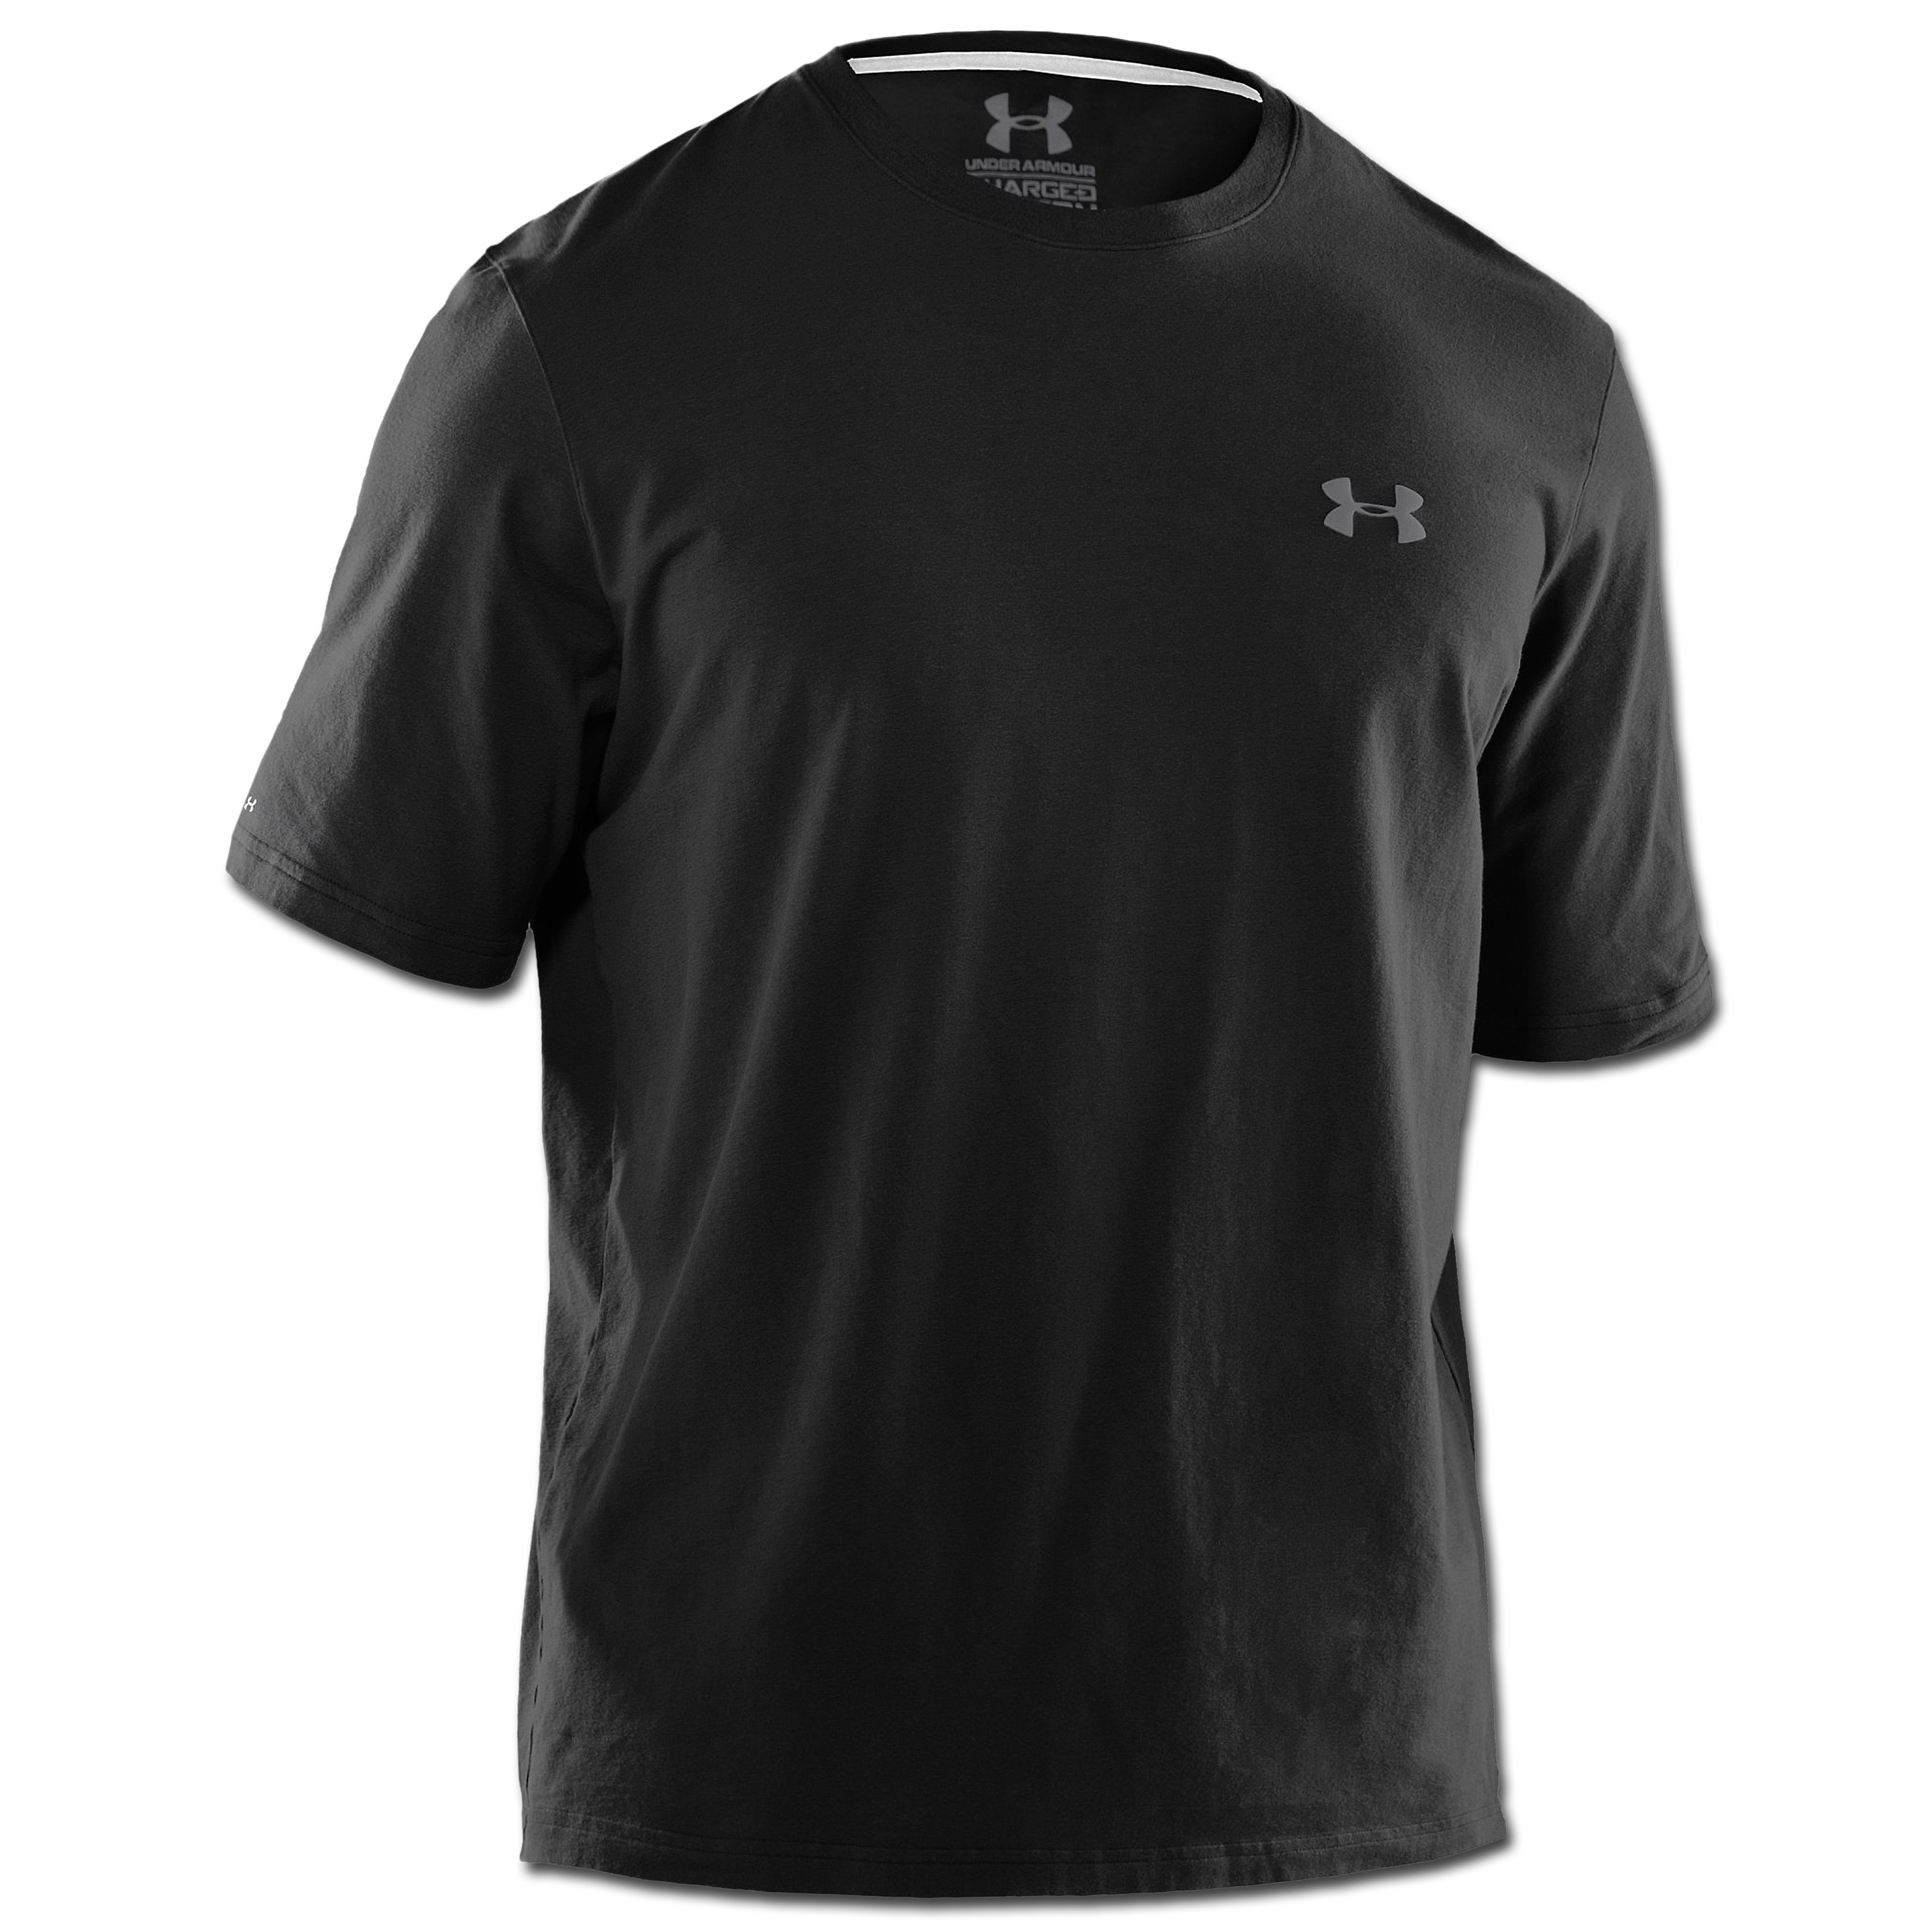 Camiseta Under Armour HeatGear Charged Cotton negra